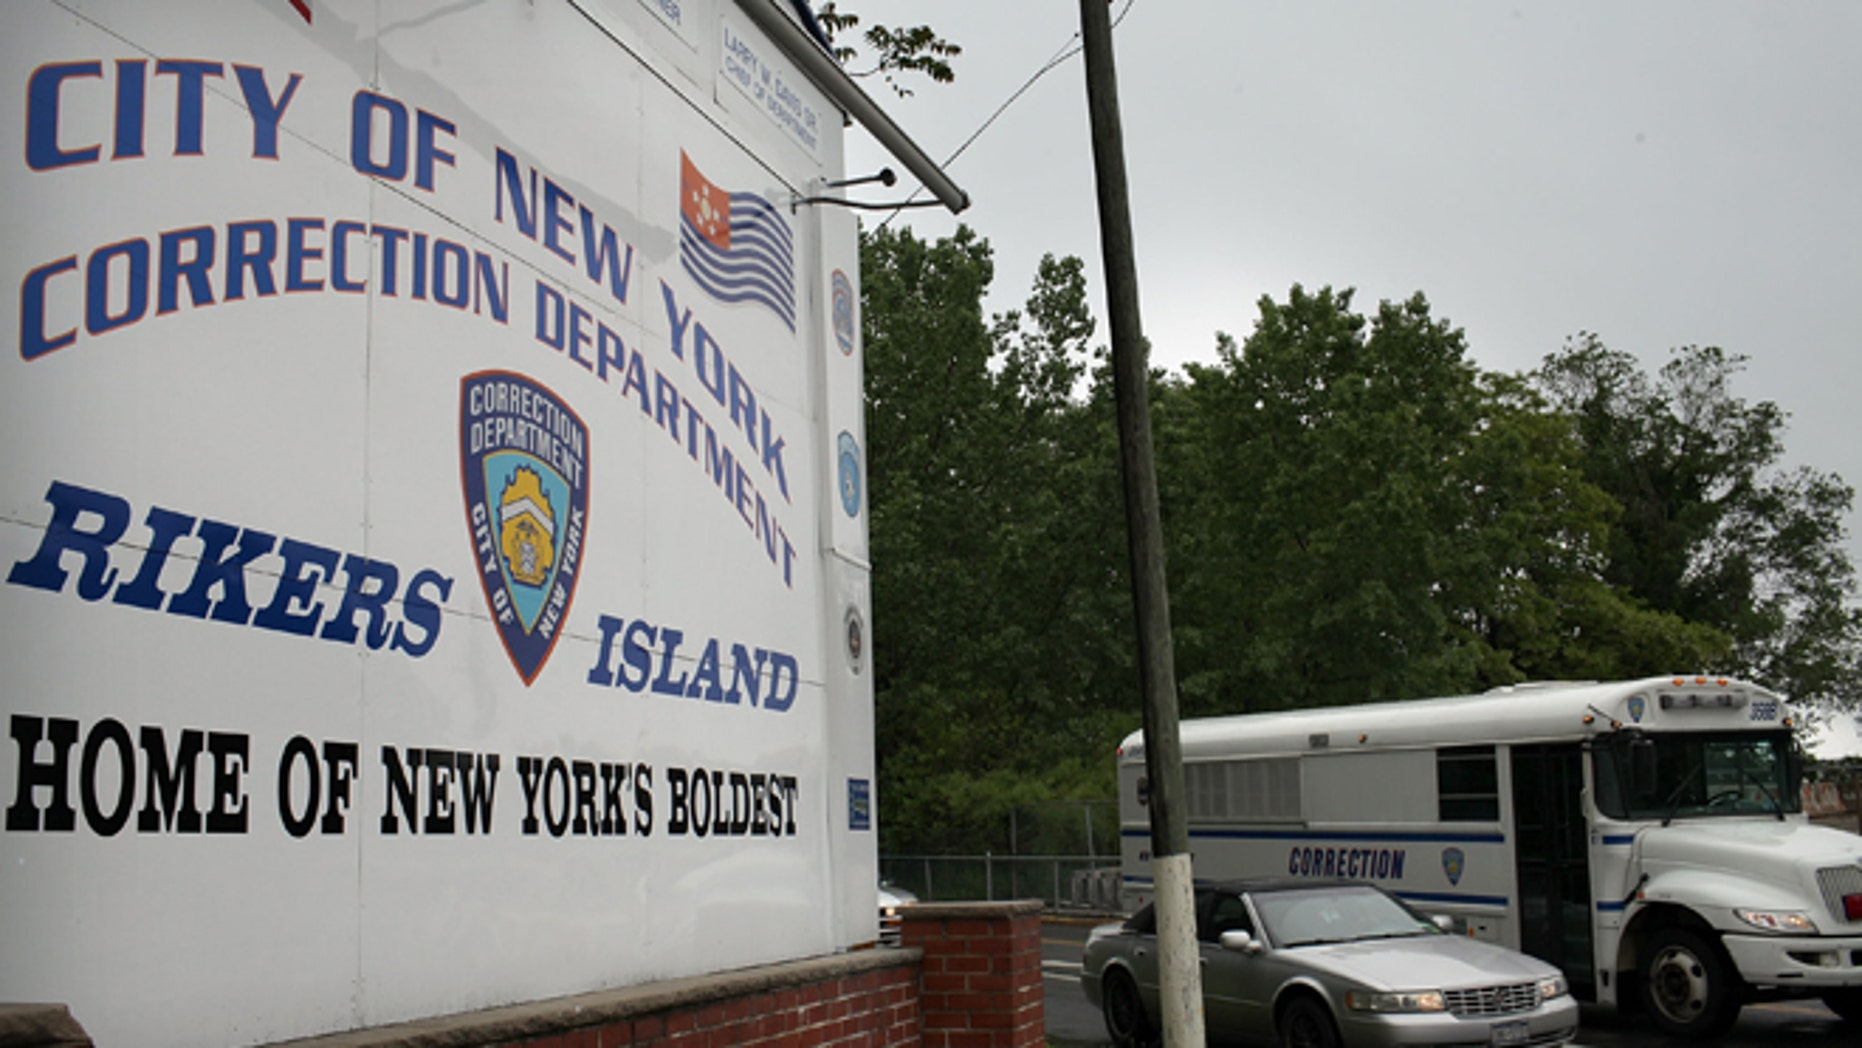 A view of the entrance to the Rikers Island prison complex.